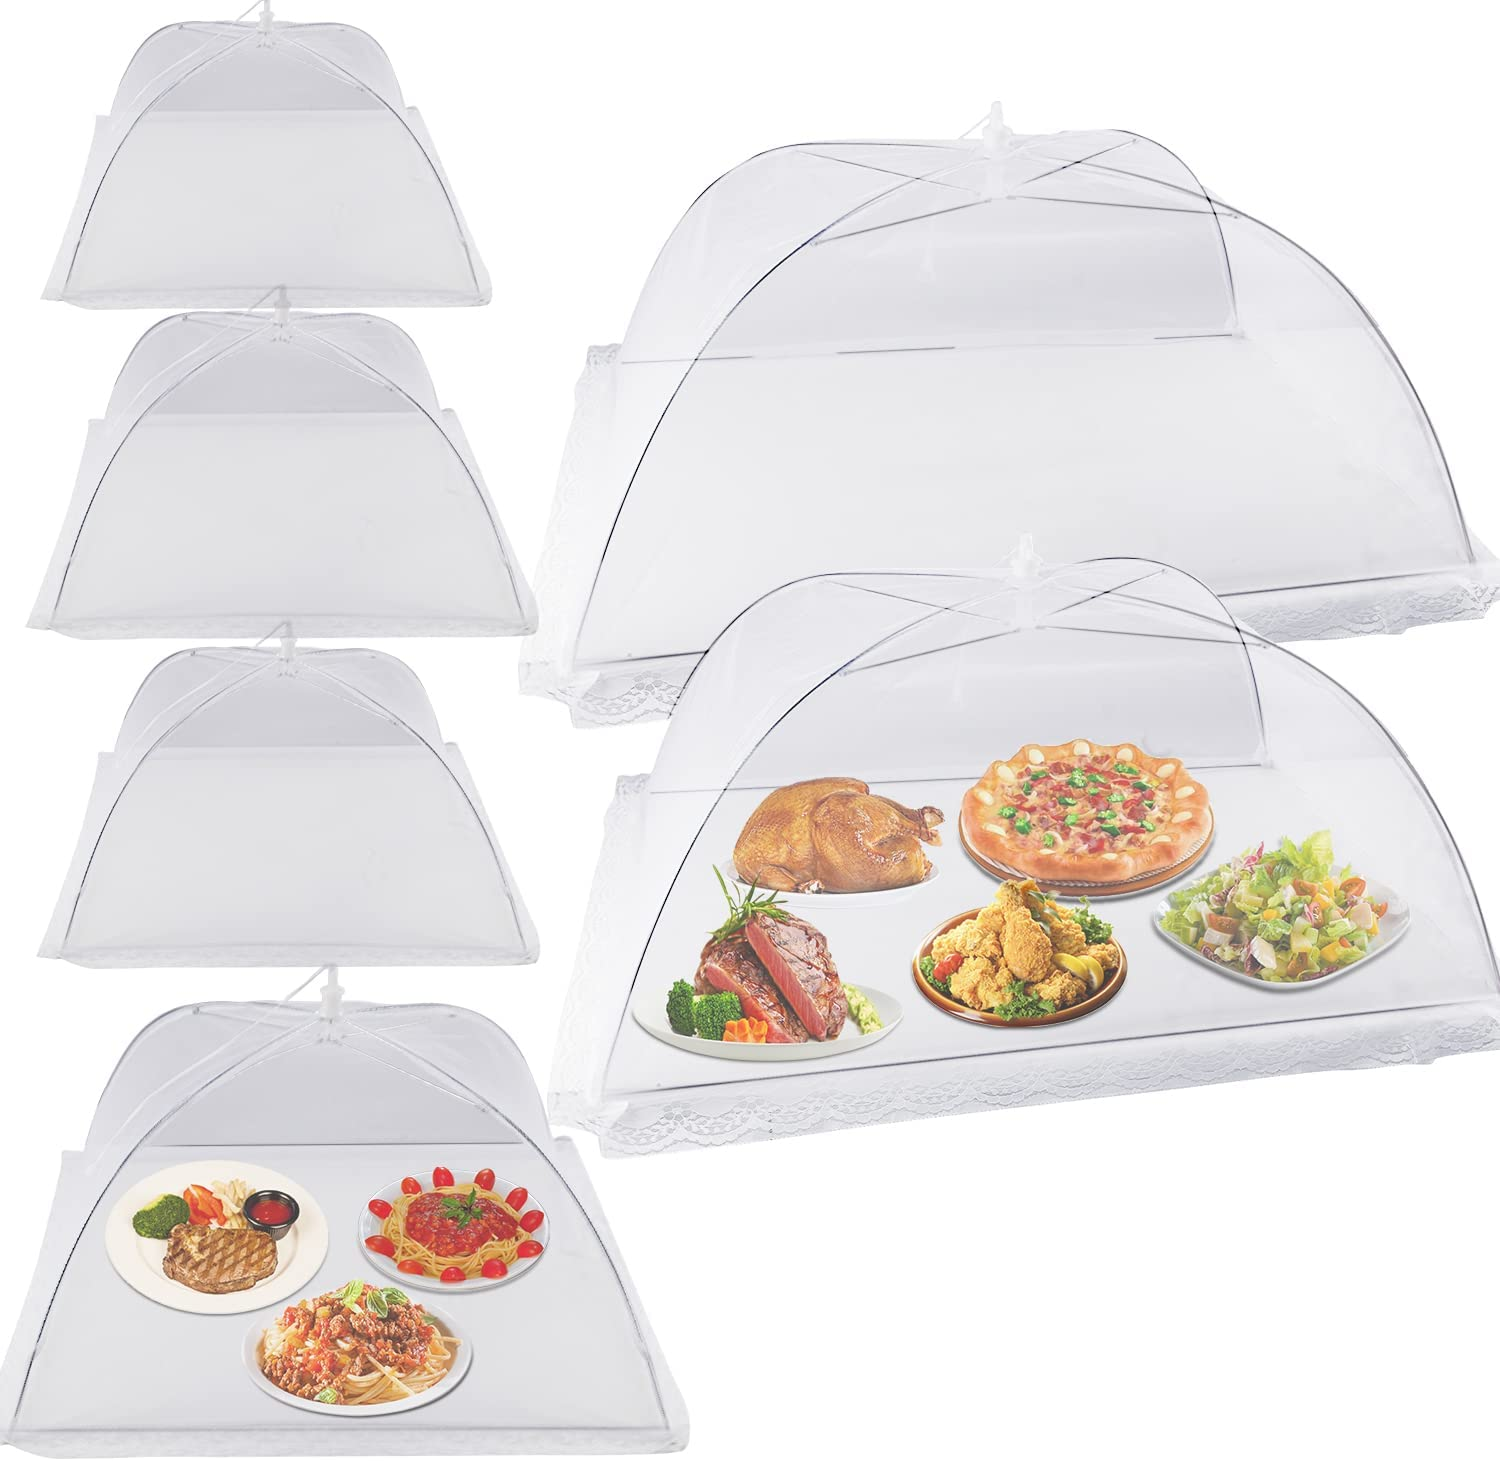 Food Covers for Outside - 2 Large (28